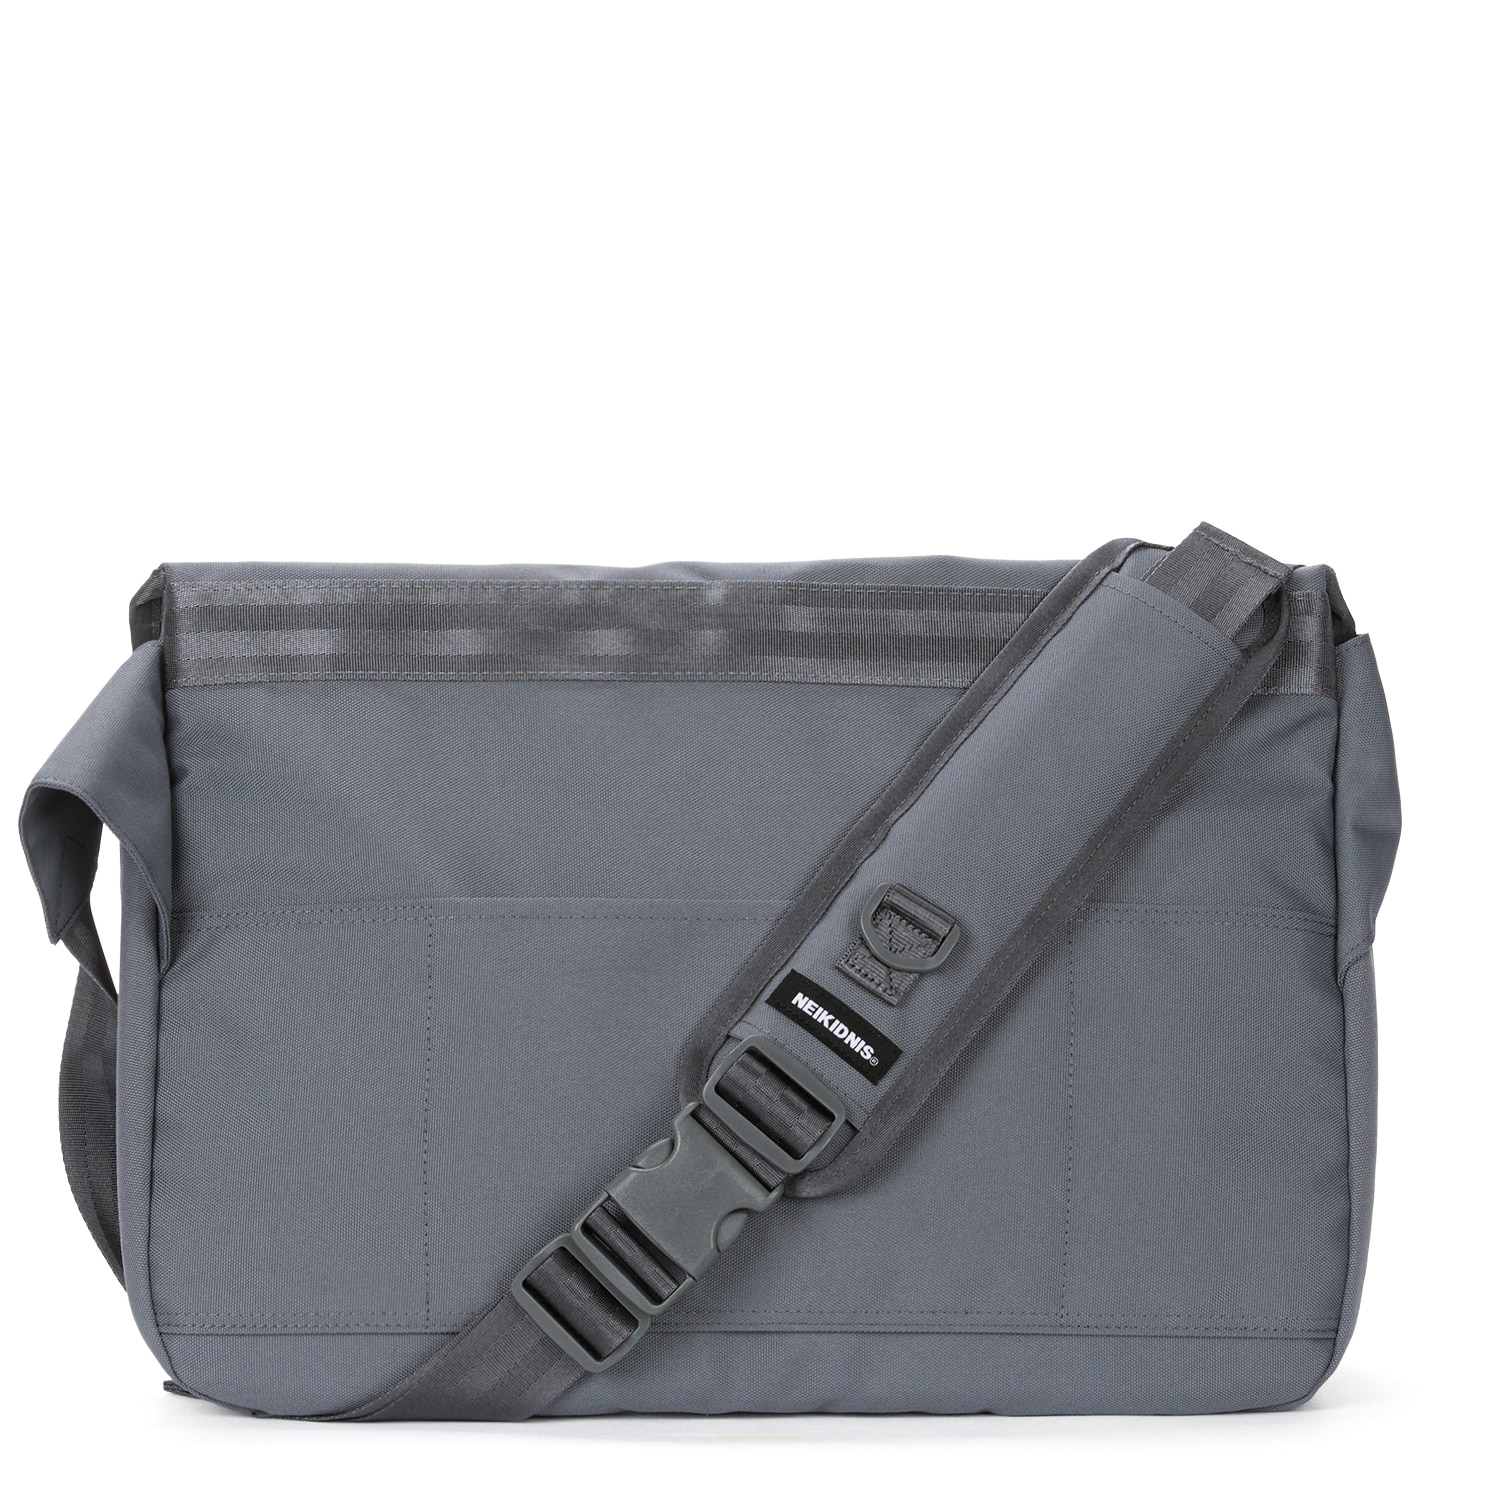 WIDE VISION MESSENGER BAG / CHARCOAL